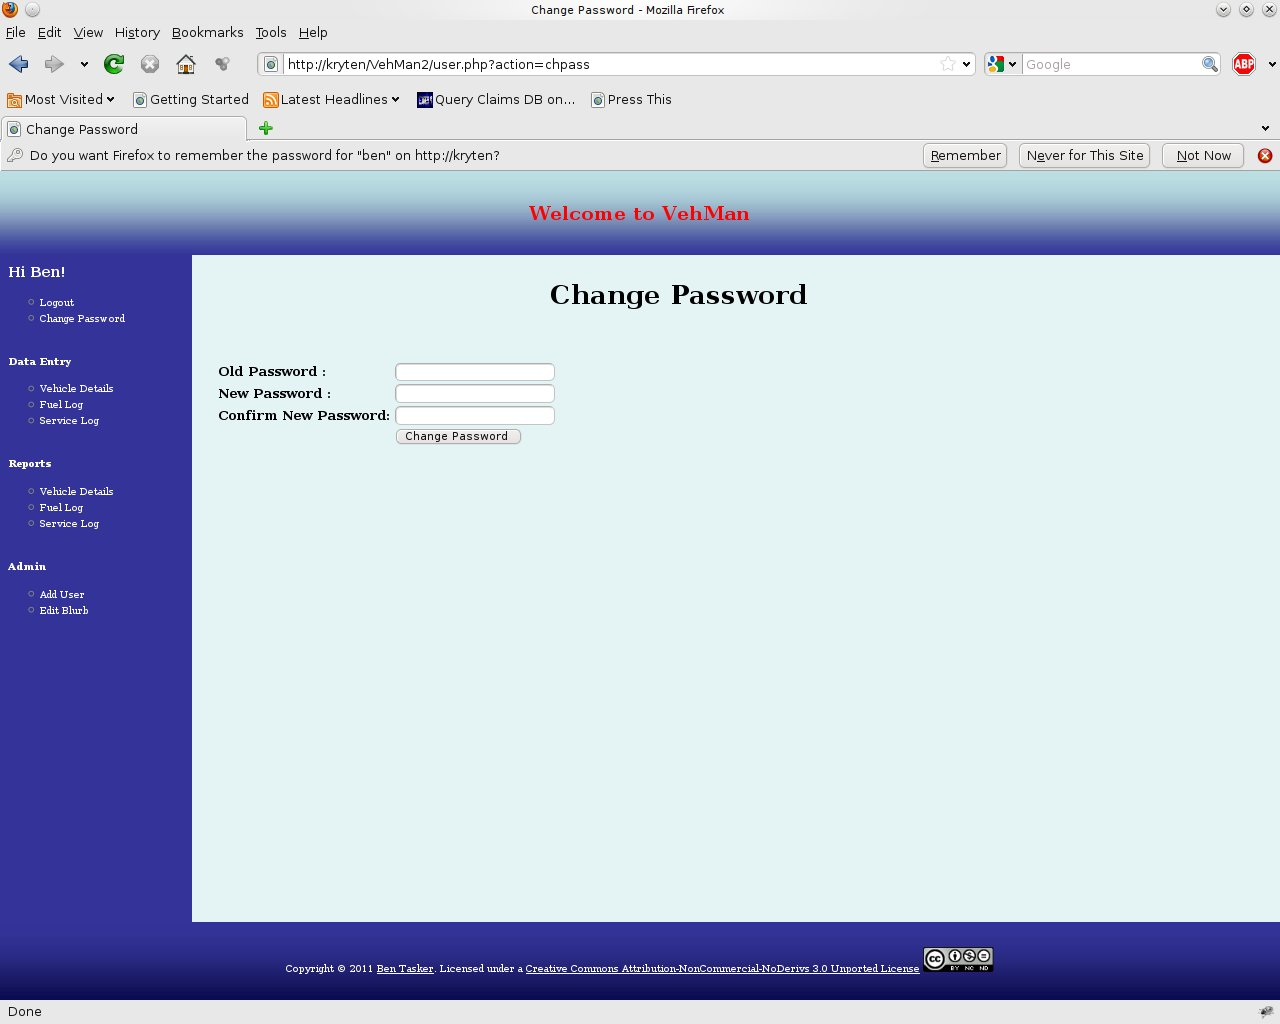 The Change Password Screen